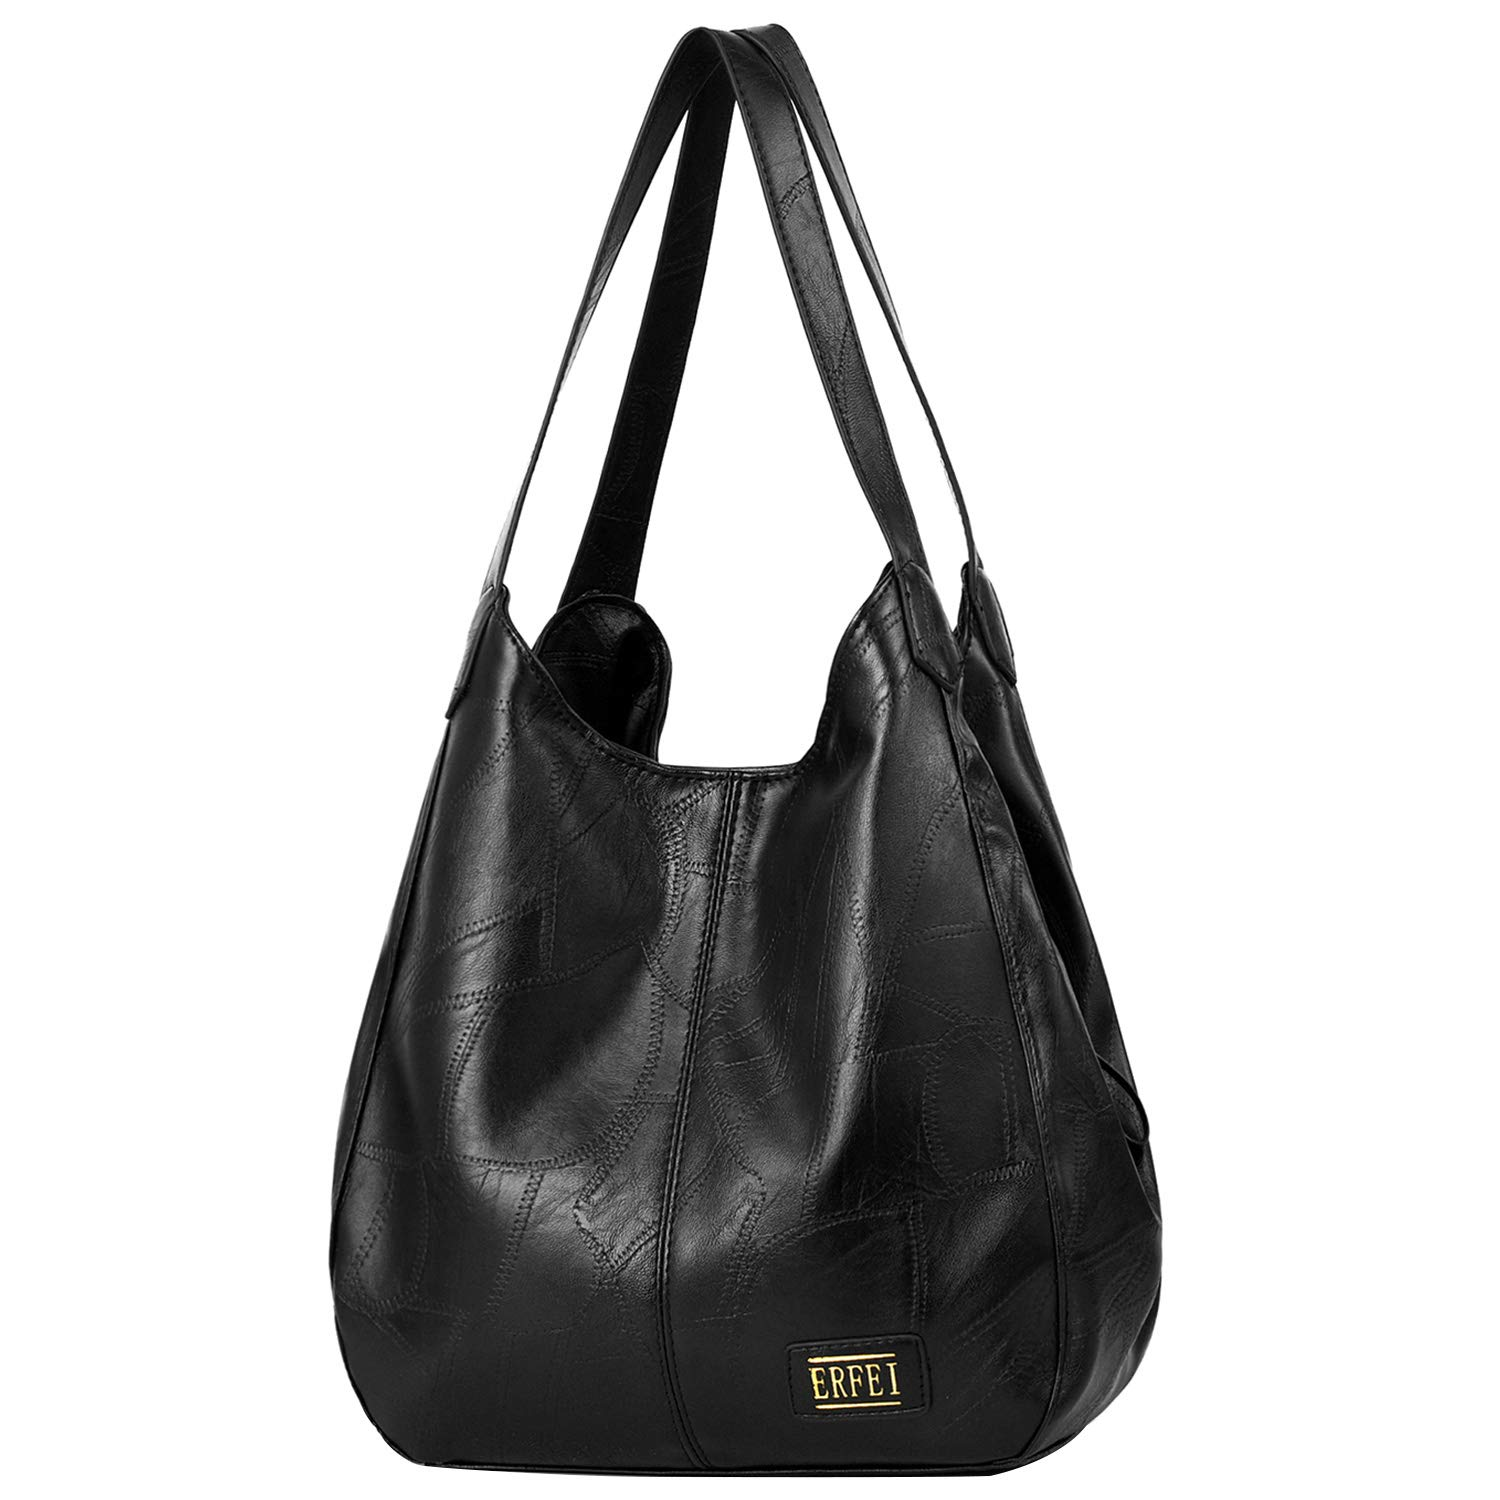 a08f14a5 Amazon.com: Shoulder Bags for Women Soft Leather Hobo Bags 3 Compartment  Large Capacity Handbag Multiple Pocket Tote Bag,Black: Shoes